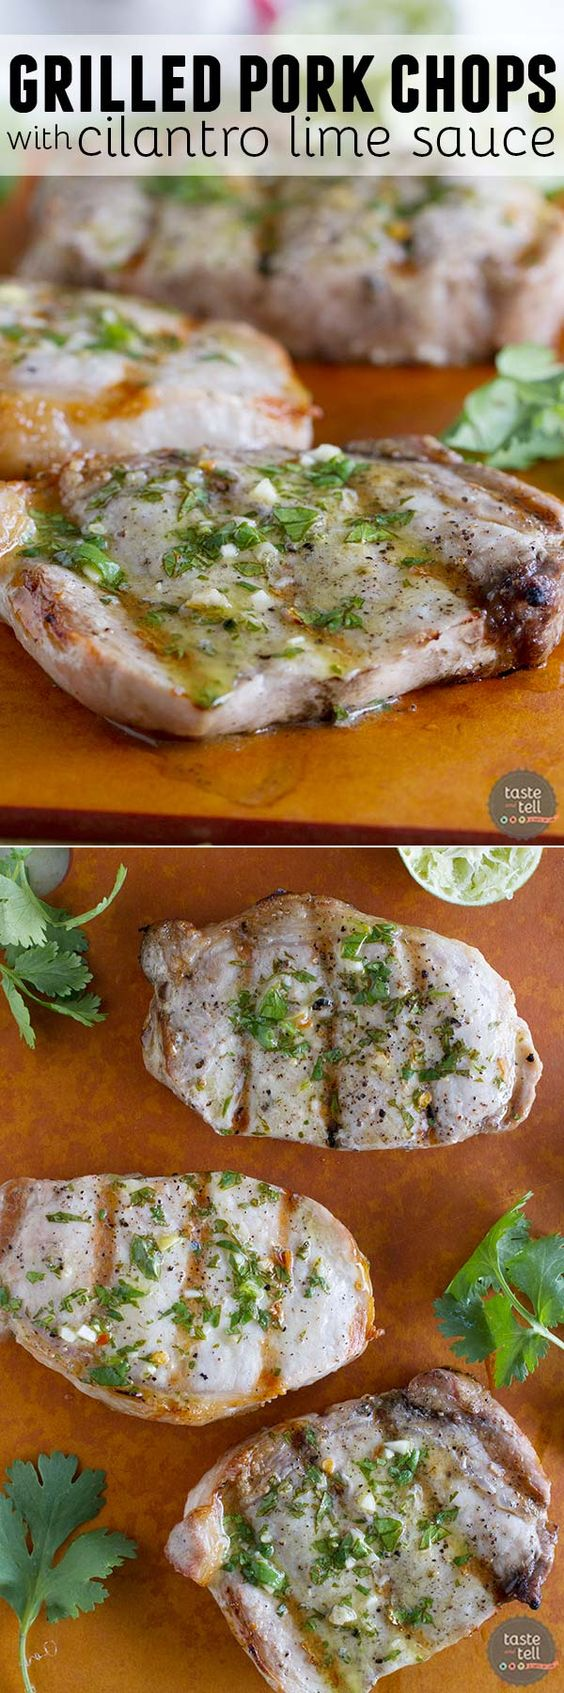 ... Lime Sauce | Recipe | Cilantro Lime Sauce, Grilled Pork Chops and